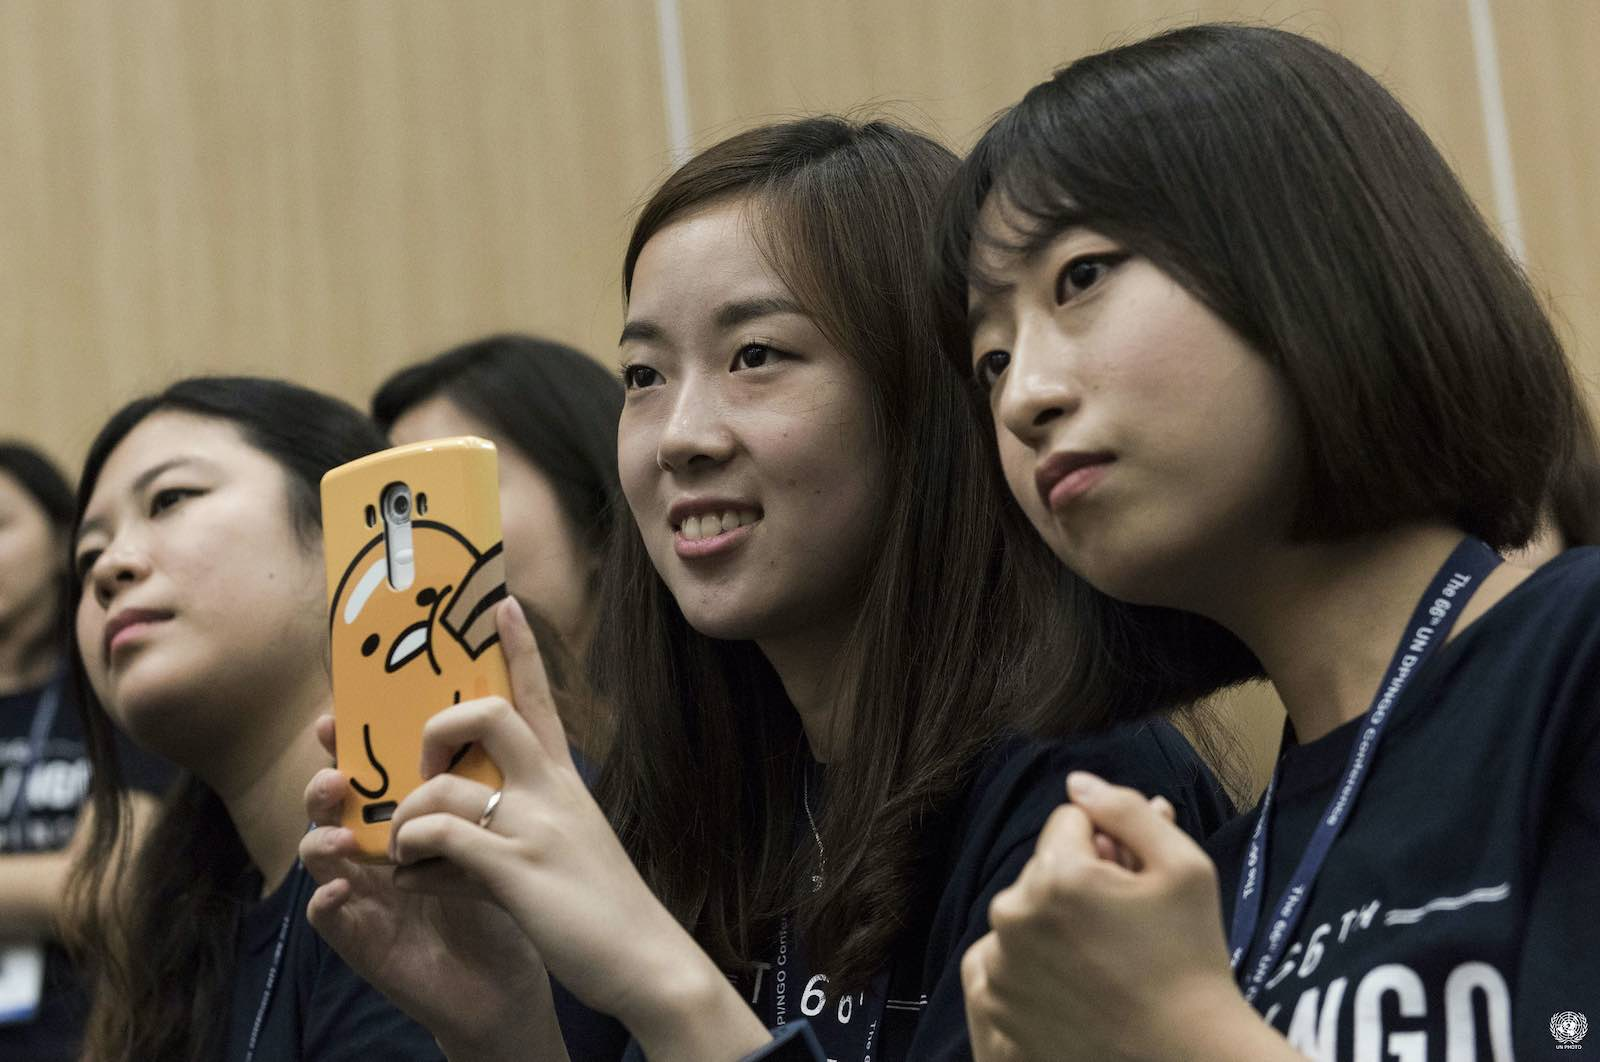 Young people make up 60% of the Asia-Pacific population (Mark Garten/UN Photo)